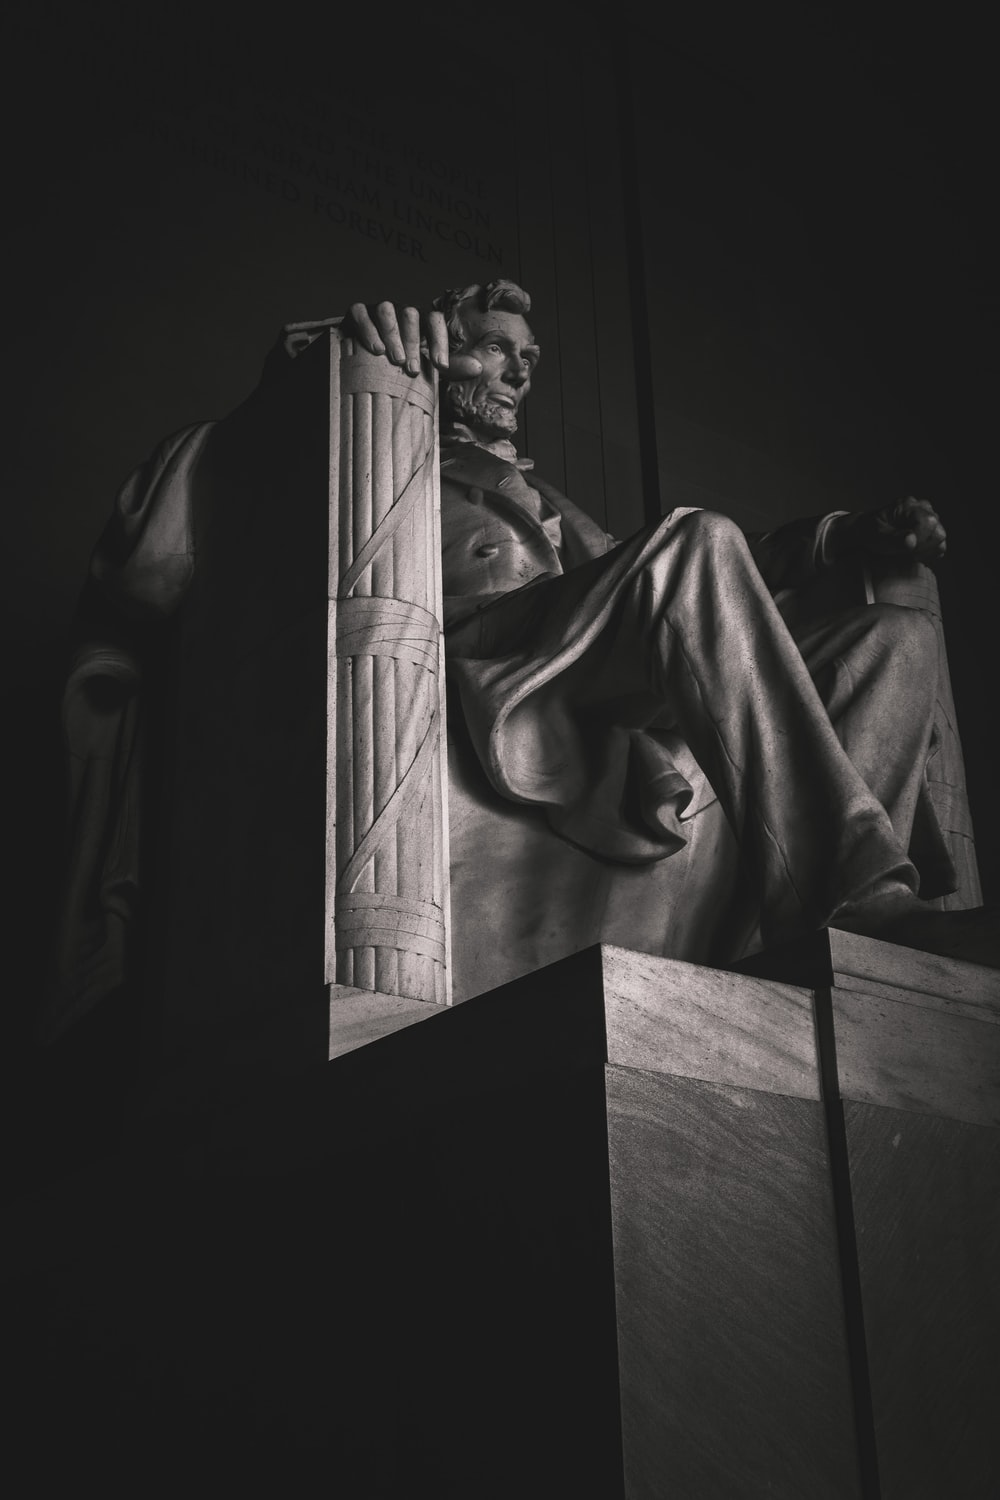 man in robe statue in grayscale photography